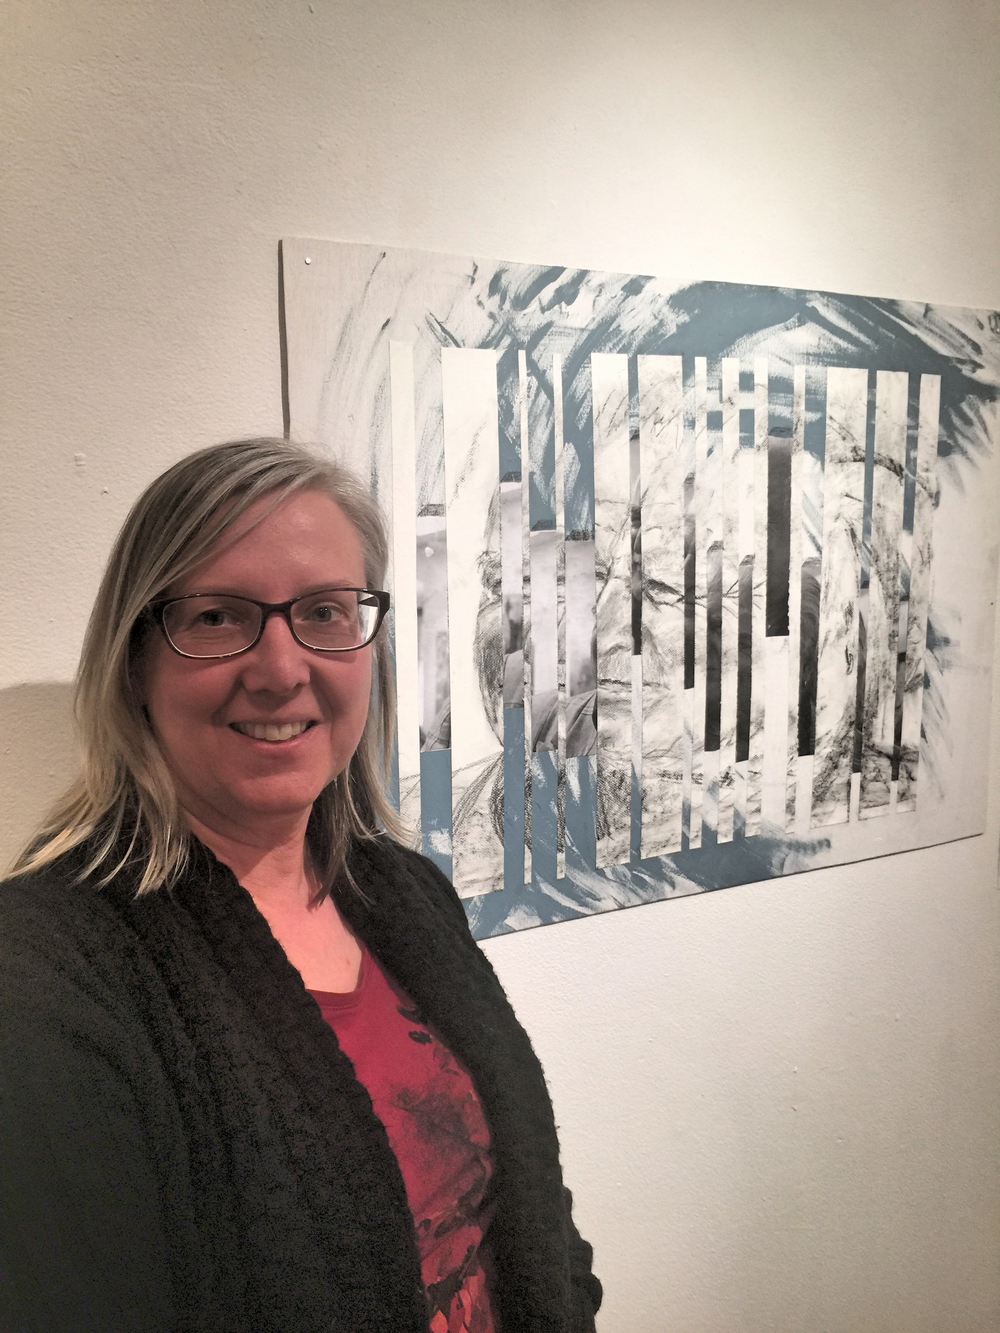 Angela with her response art work to Knizak at Kwantlen Polytechnic University, created prior to leaving for New York and Venice.